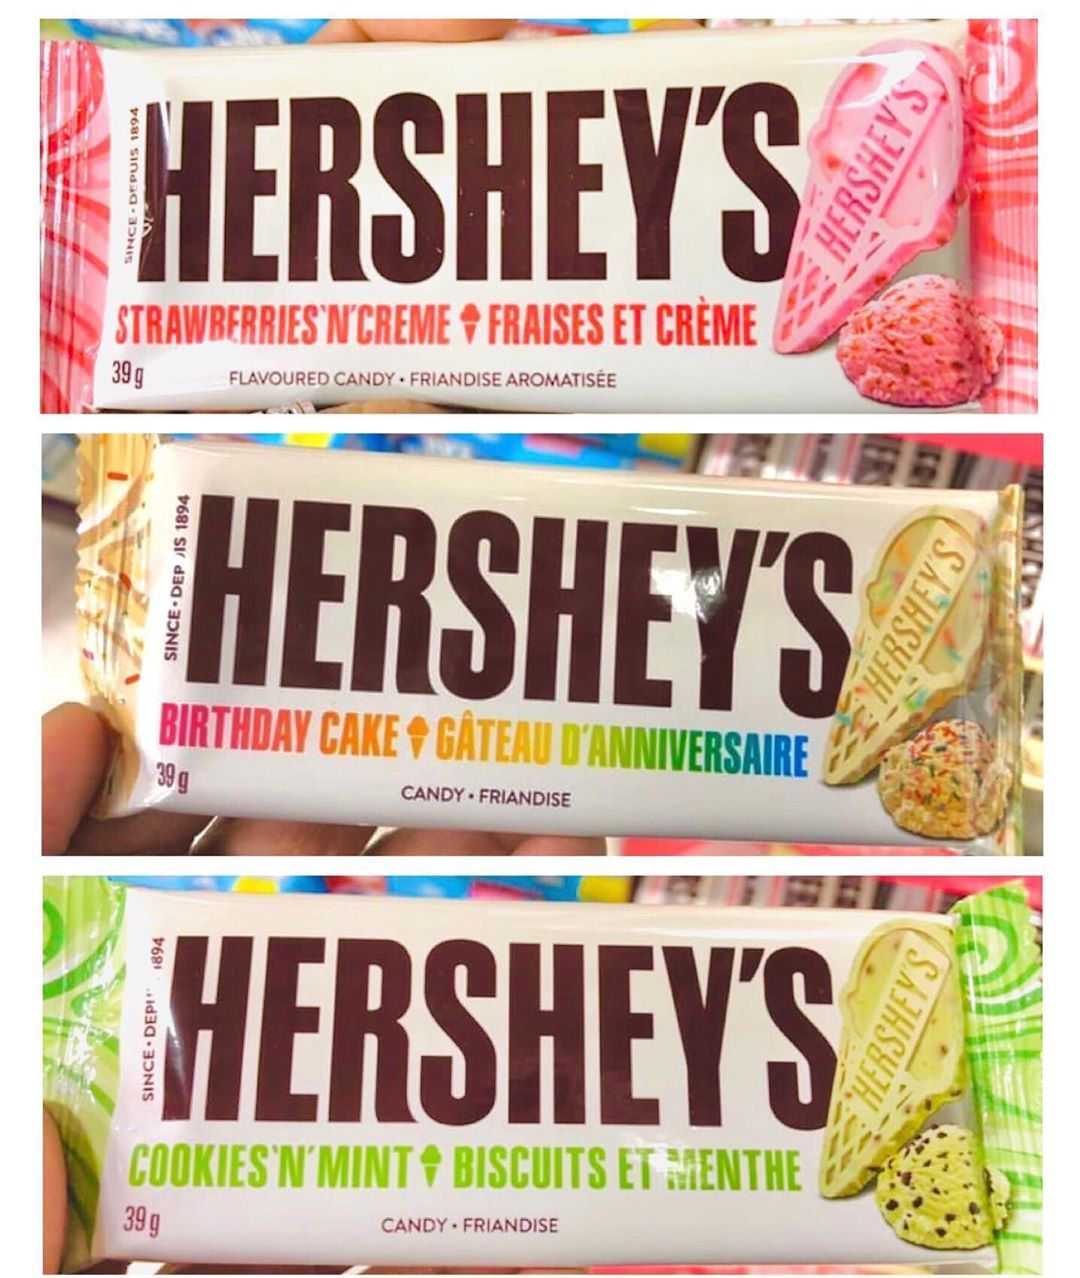 Hershey's Has New Bars In Flavors Like Cookies 'N' Mint And Birthday Cake